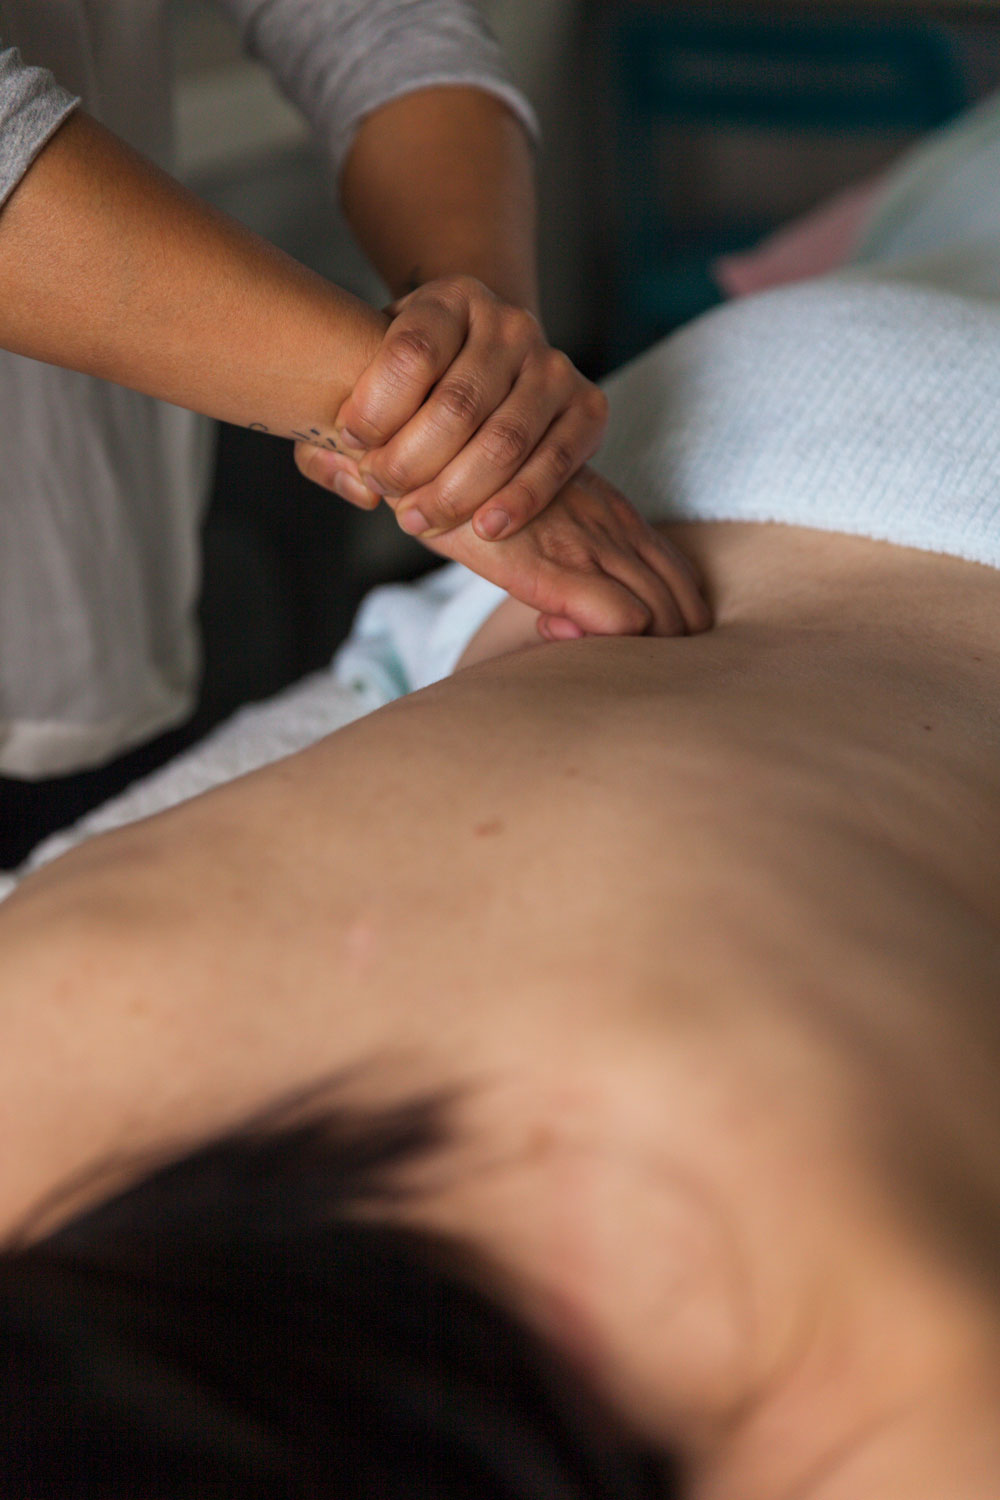 remedialmassage_gallery4.jpg